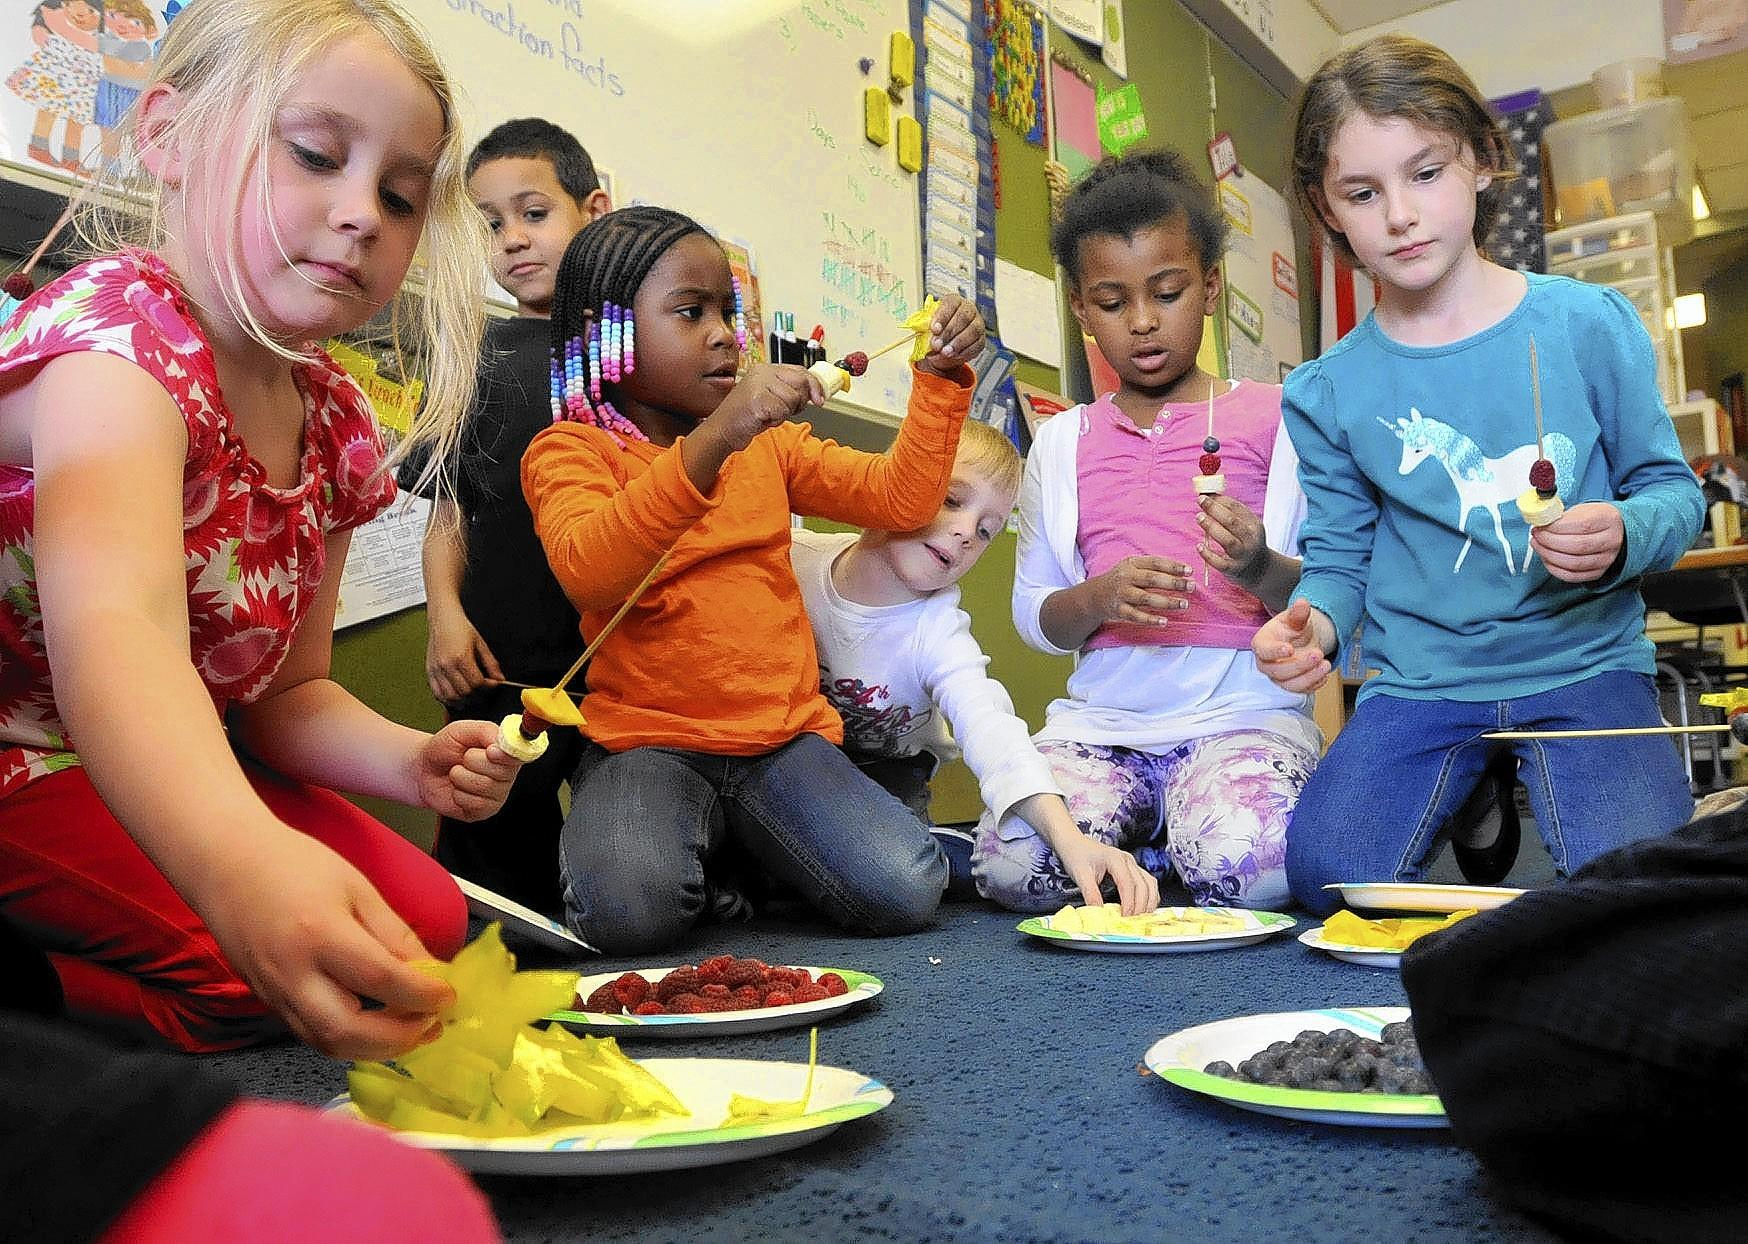 """Hartford, CT - 05/02/14 - Students are participating in an 8-week educational cluster program at Keeney School in Manchester, in which students have some say in their subject matter. Each cluster meets weekly. Left to right, kindergarteners and first graders in a cluster called """"Taste of the Tropics"""": Zoe Syme, Derrick Sheets, Ashanti Channer, Christopher Santostefano, Jazlenne Frederick and Emma Skoog make fruit magic wands. Photo by BRAD HORRIGAN 